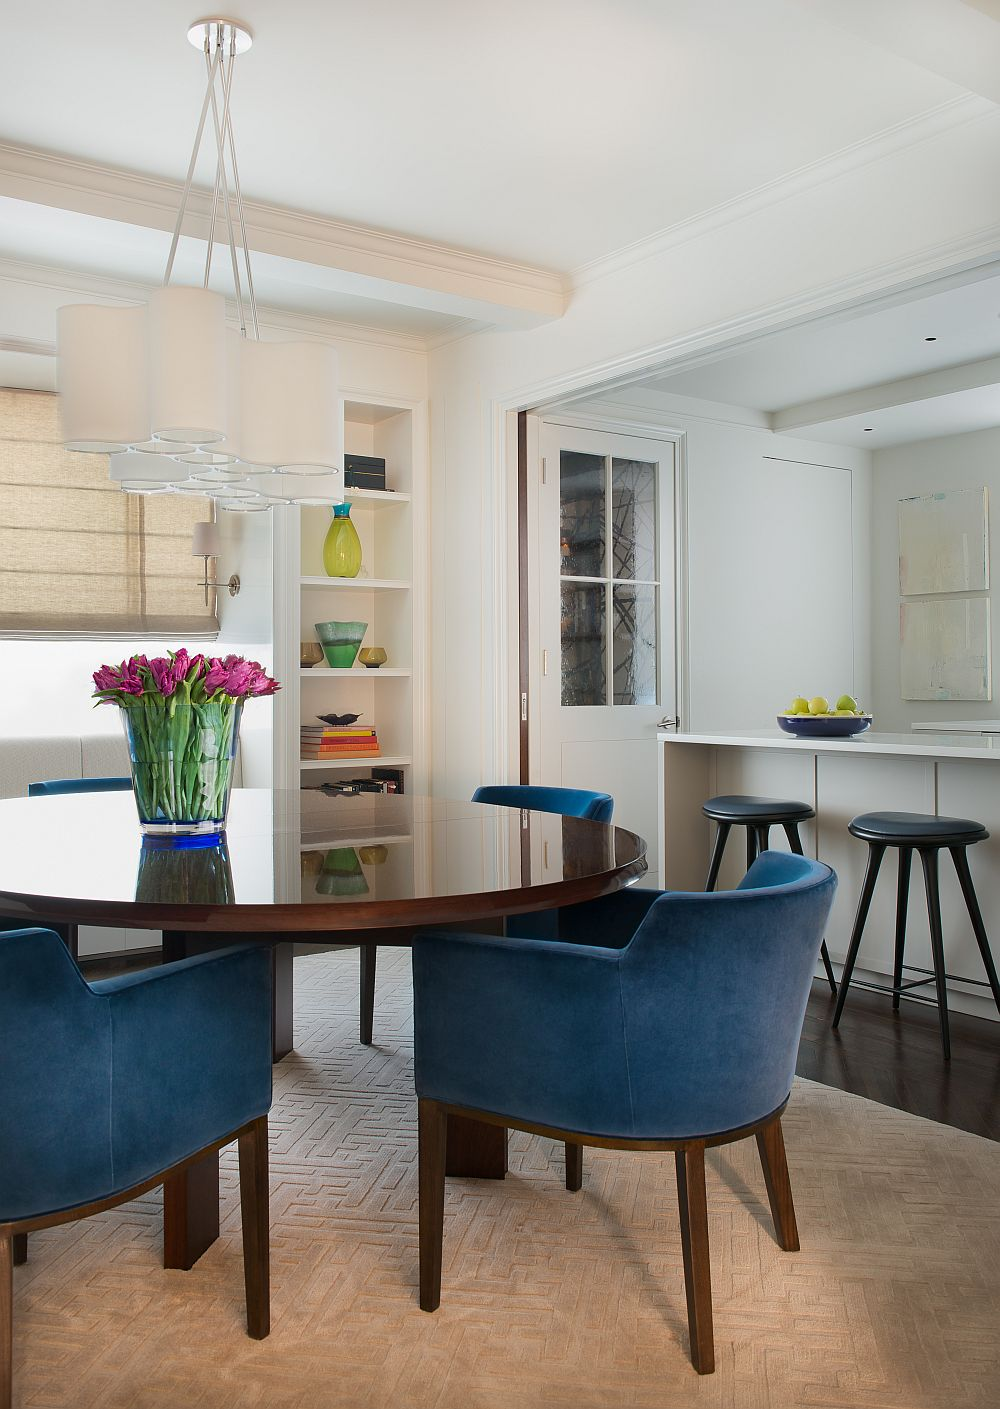 Lovelu use of color in the dining space